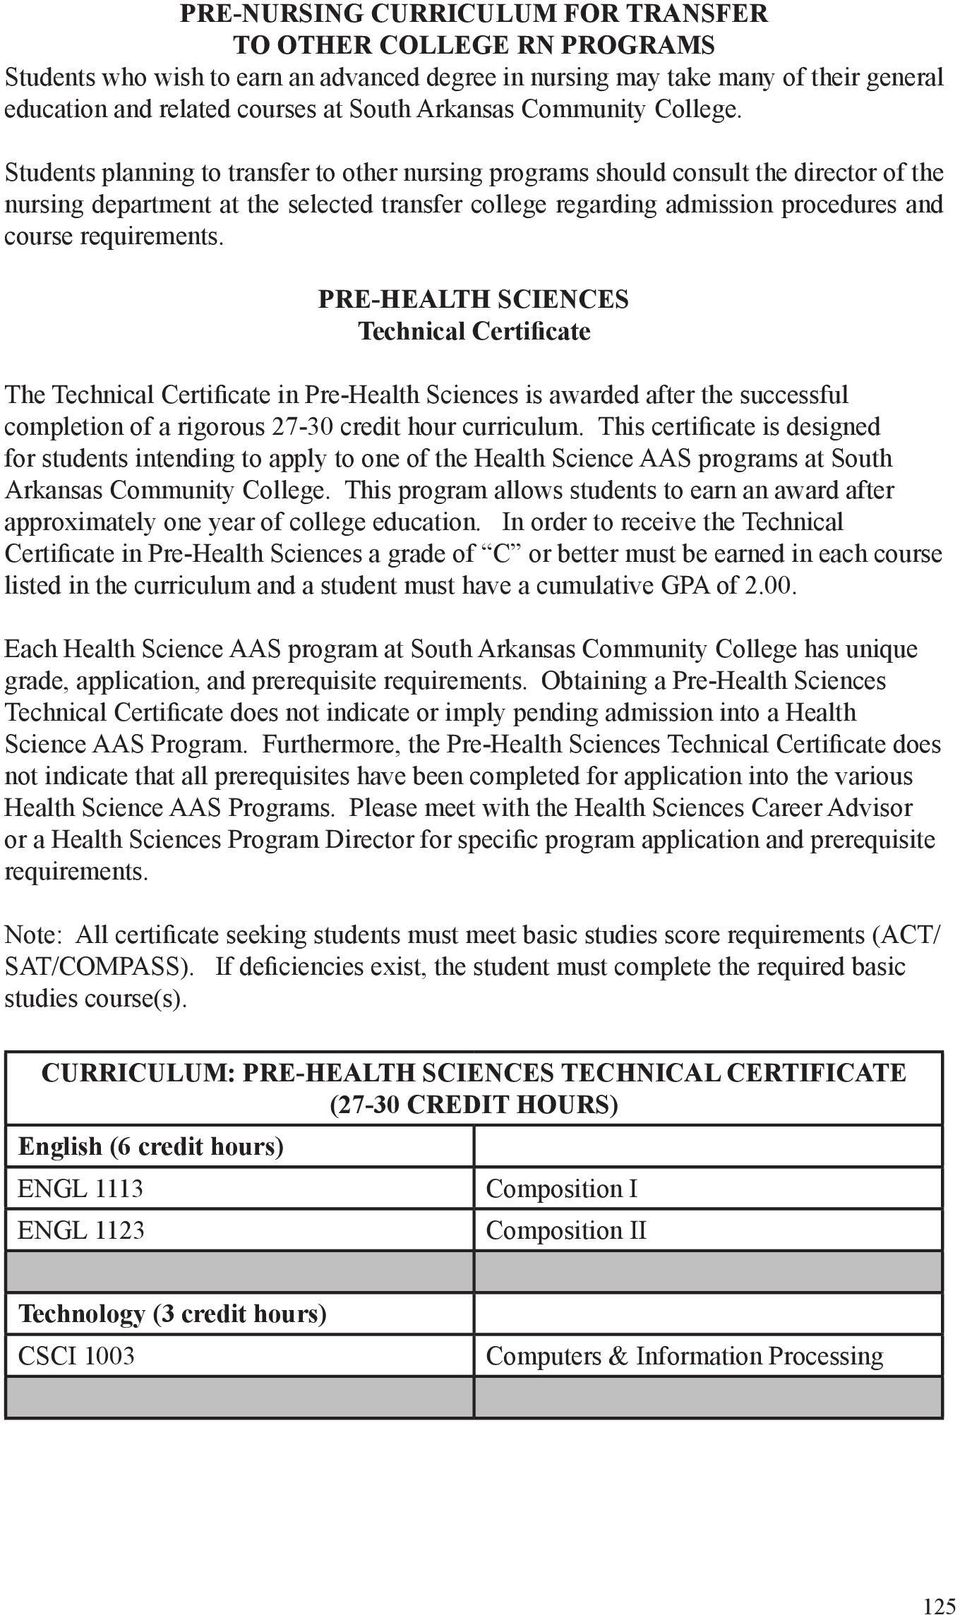 Students planning to transfer to other nursing programs should consult the director of the nursing department at the selected transfer college regarding admission procedures and course requirements.